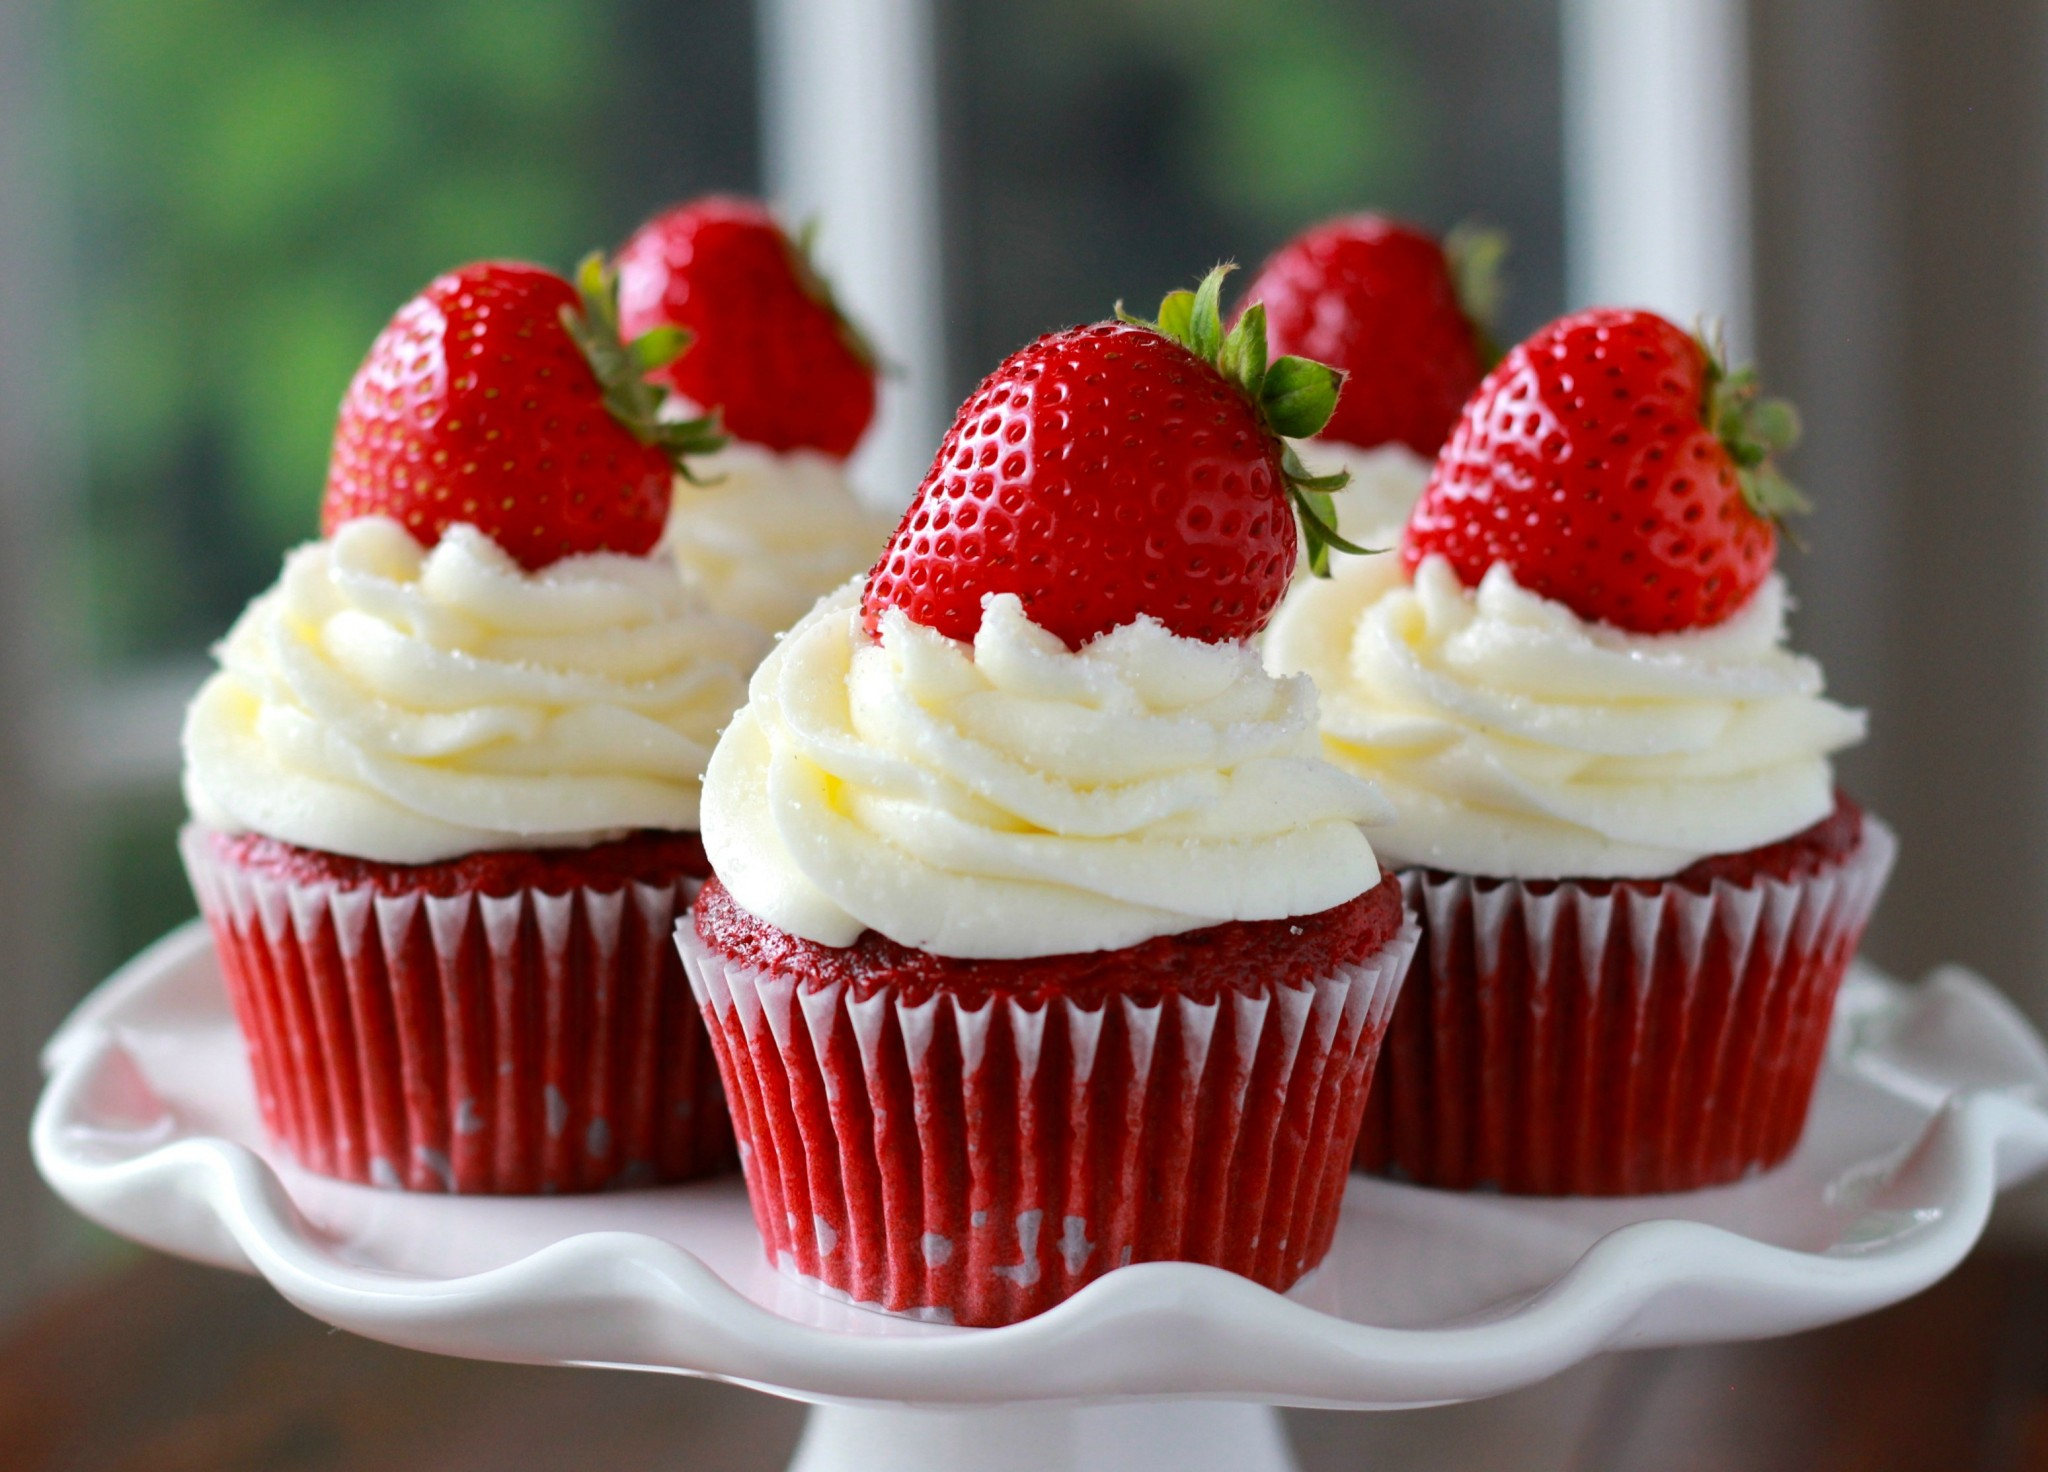 What Cupcake Are You According to Your Horoscope - Red velvet-Strawberry cupcake